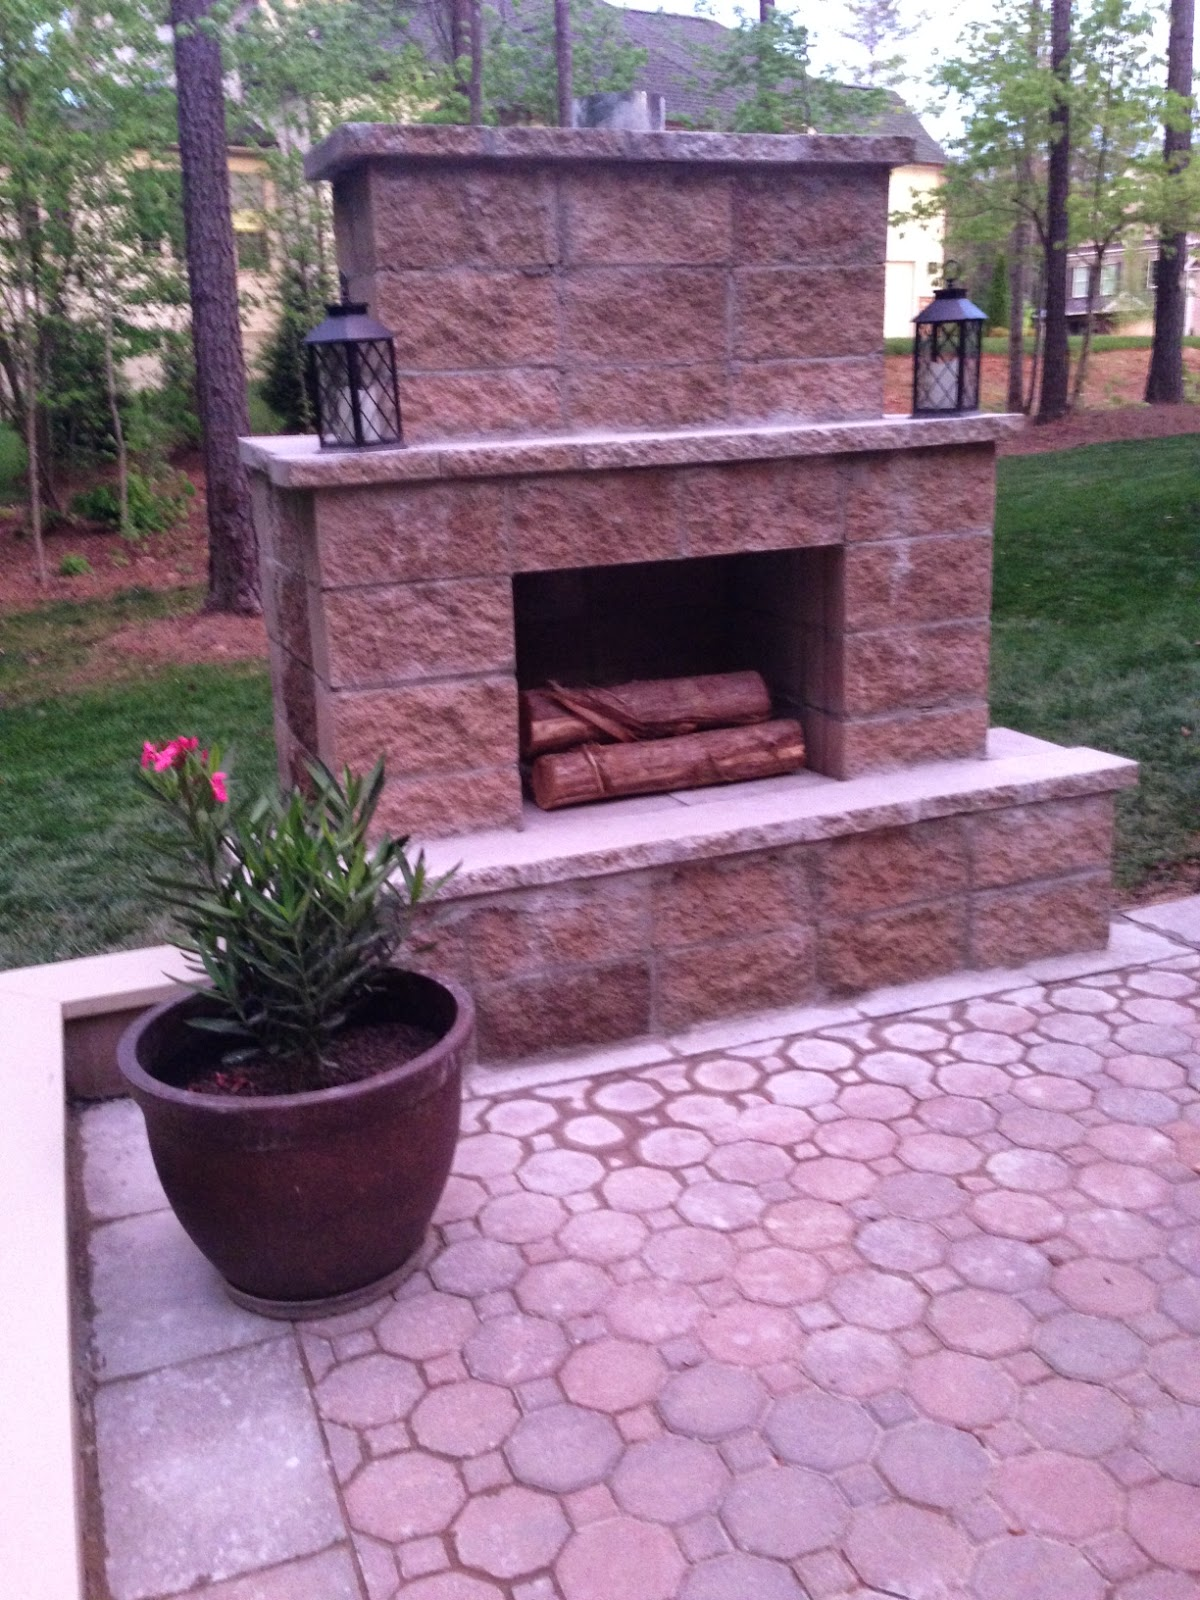 Life in the Barbie Dream House DIY Paver Patio and Outdoor